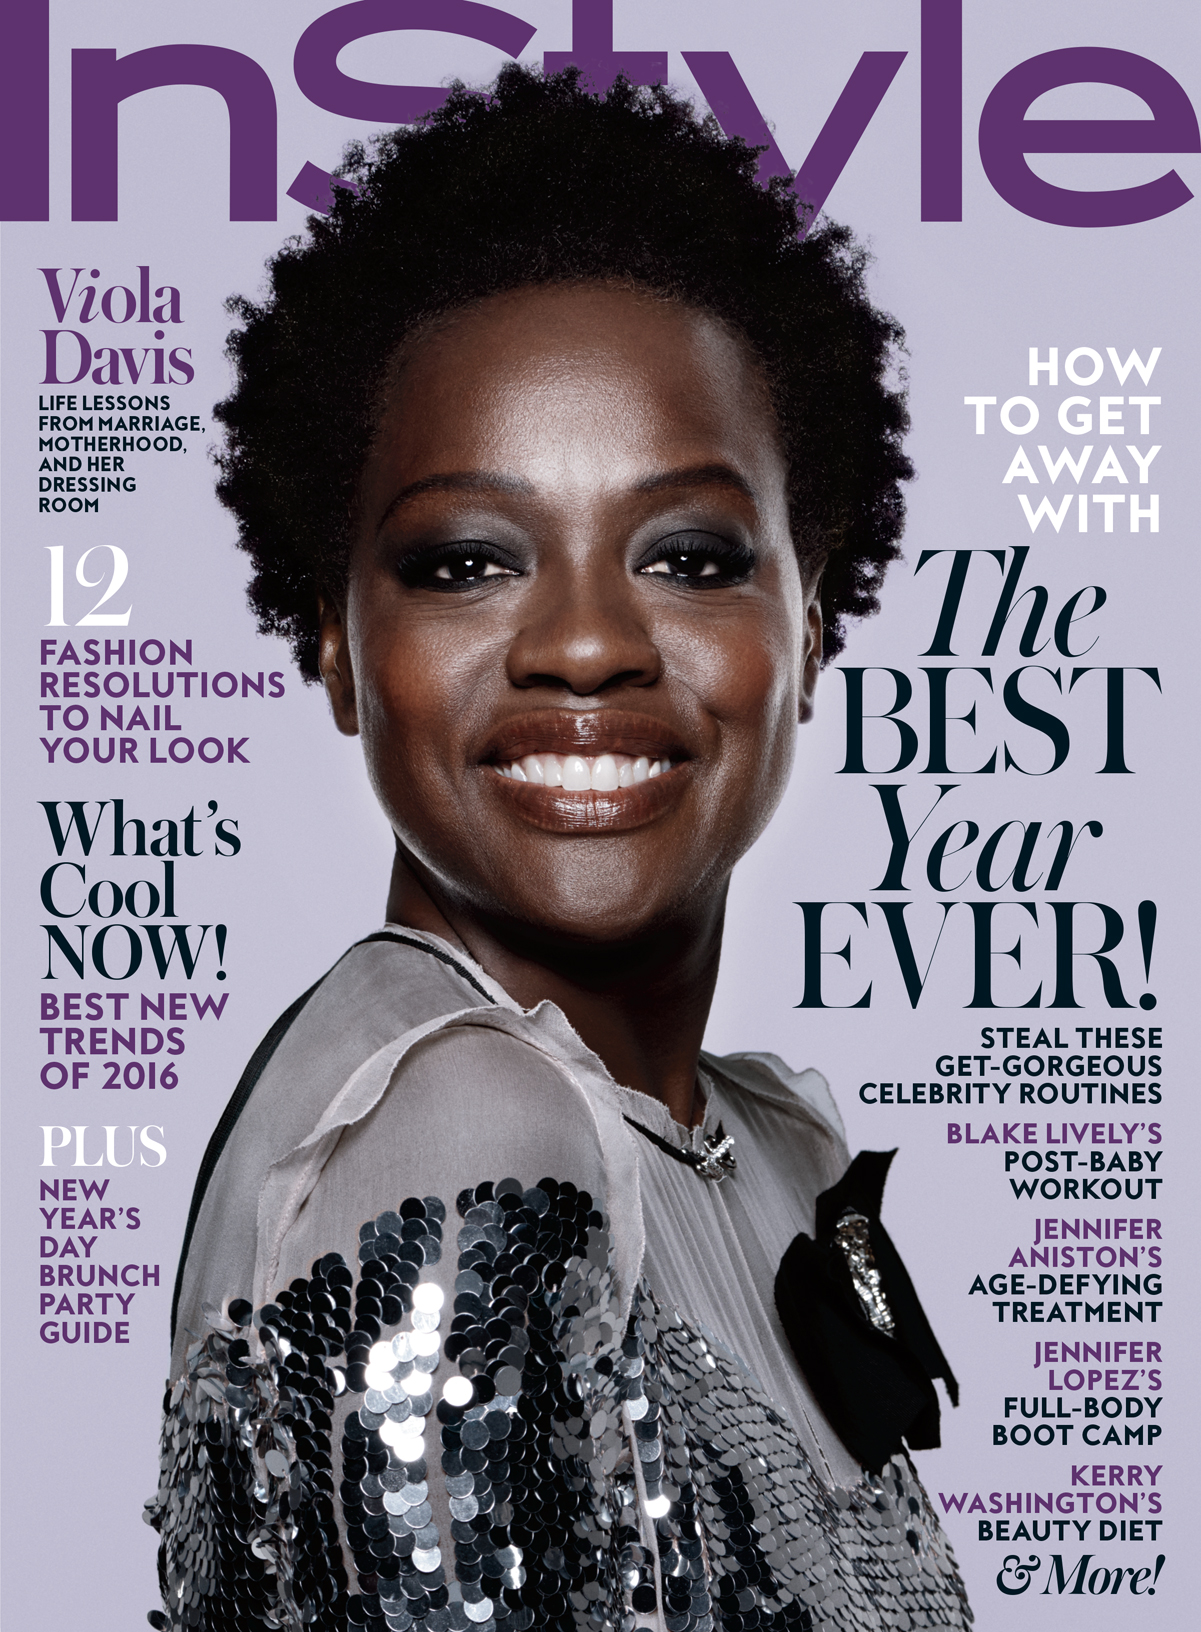 Viola Davis Is InStyles January 2016 Cover Girl